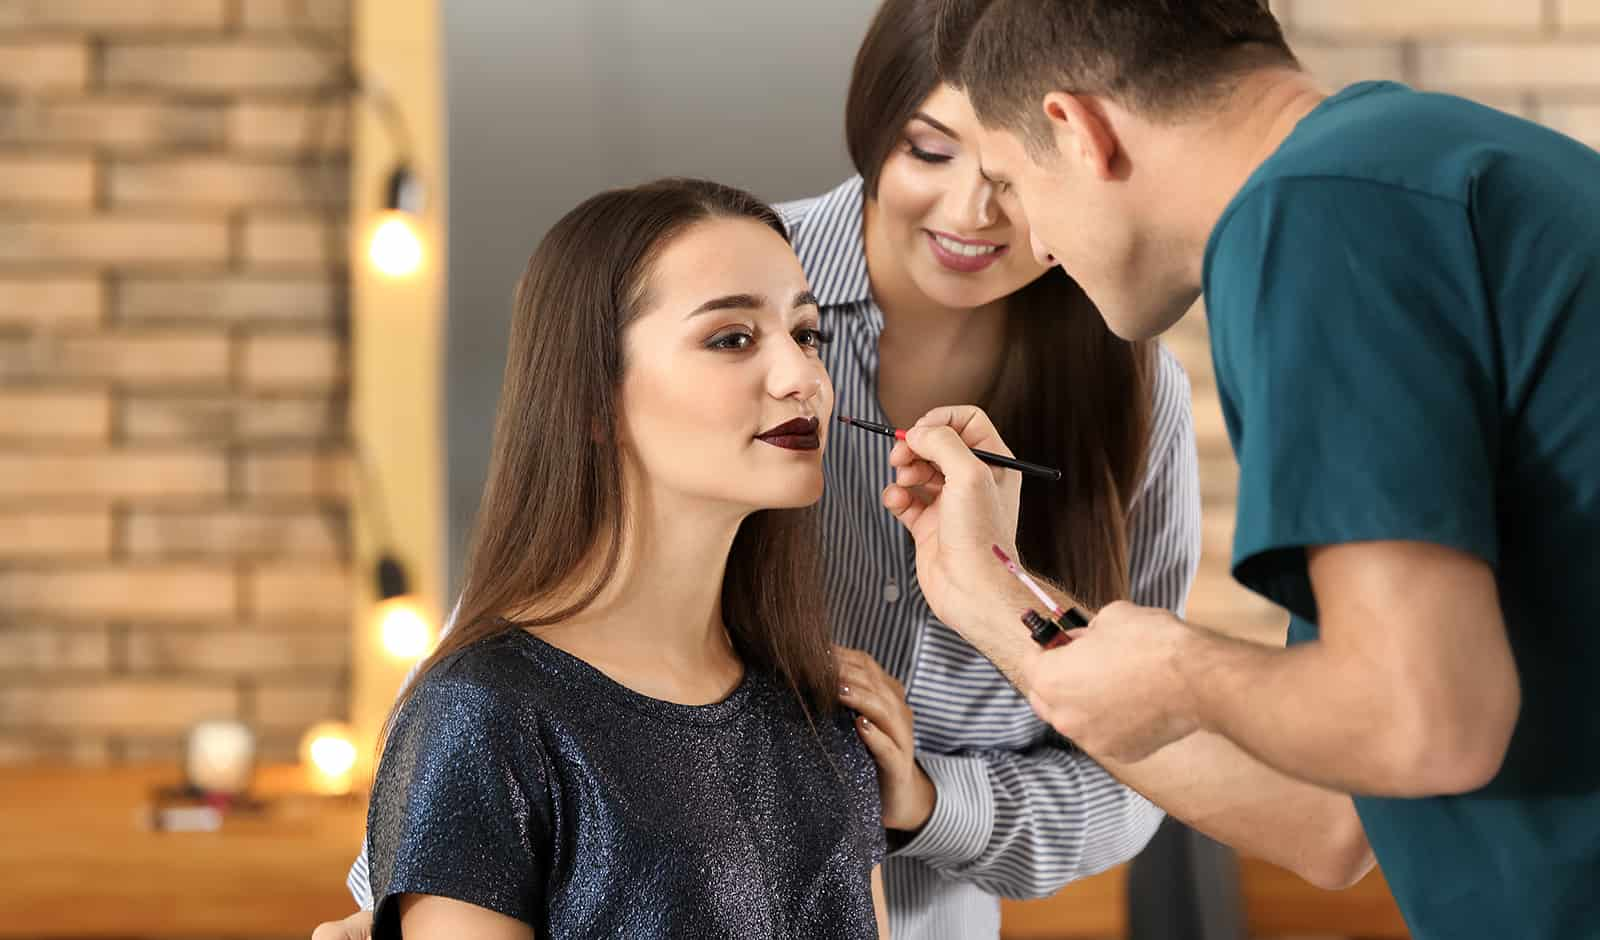 How-Getting-Your-Cosmetology-School-Degree-Can-Be-Great-For-Your-Career-main-image